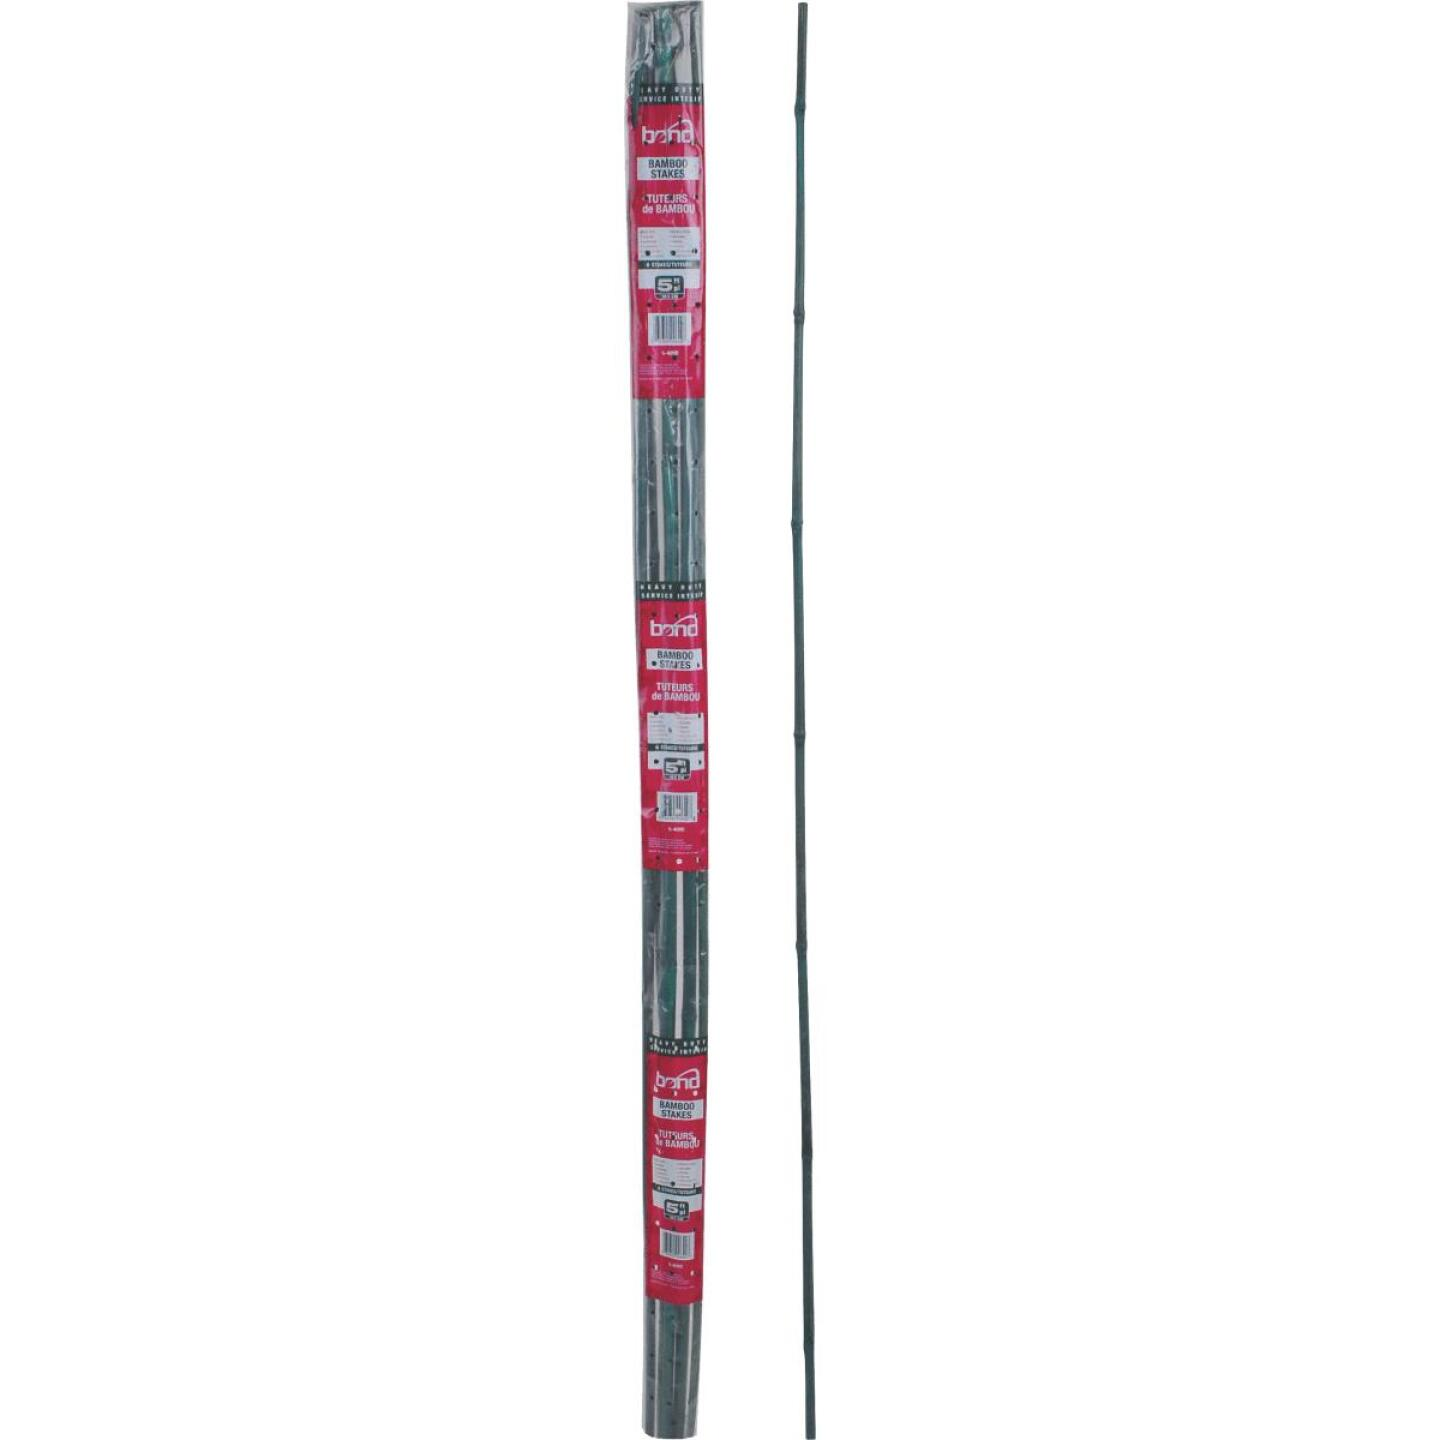 Bond 5 Ft. Green Bamboo Plant Stakes (6-Pack) Image 2